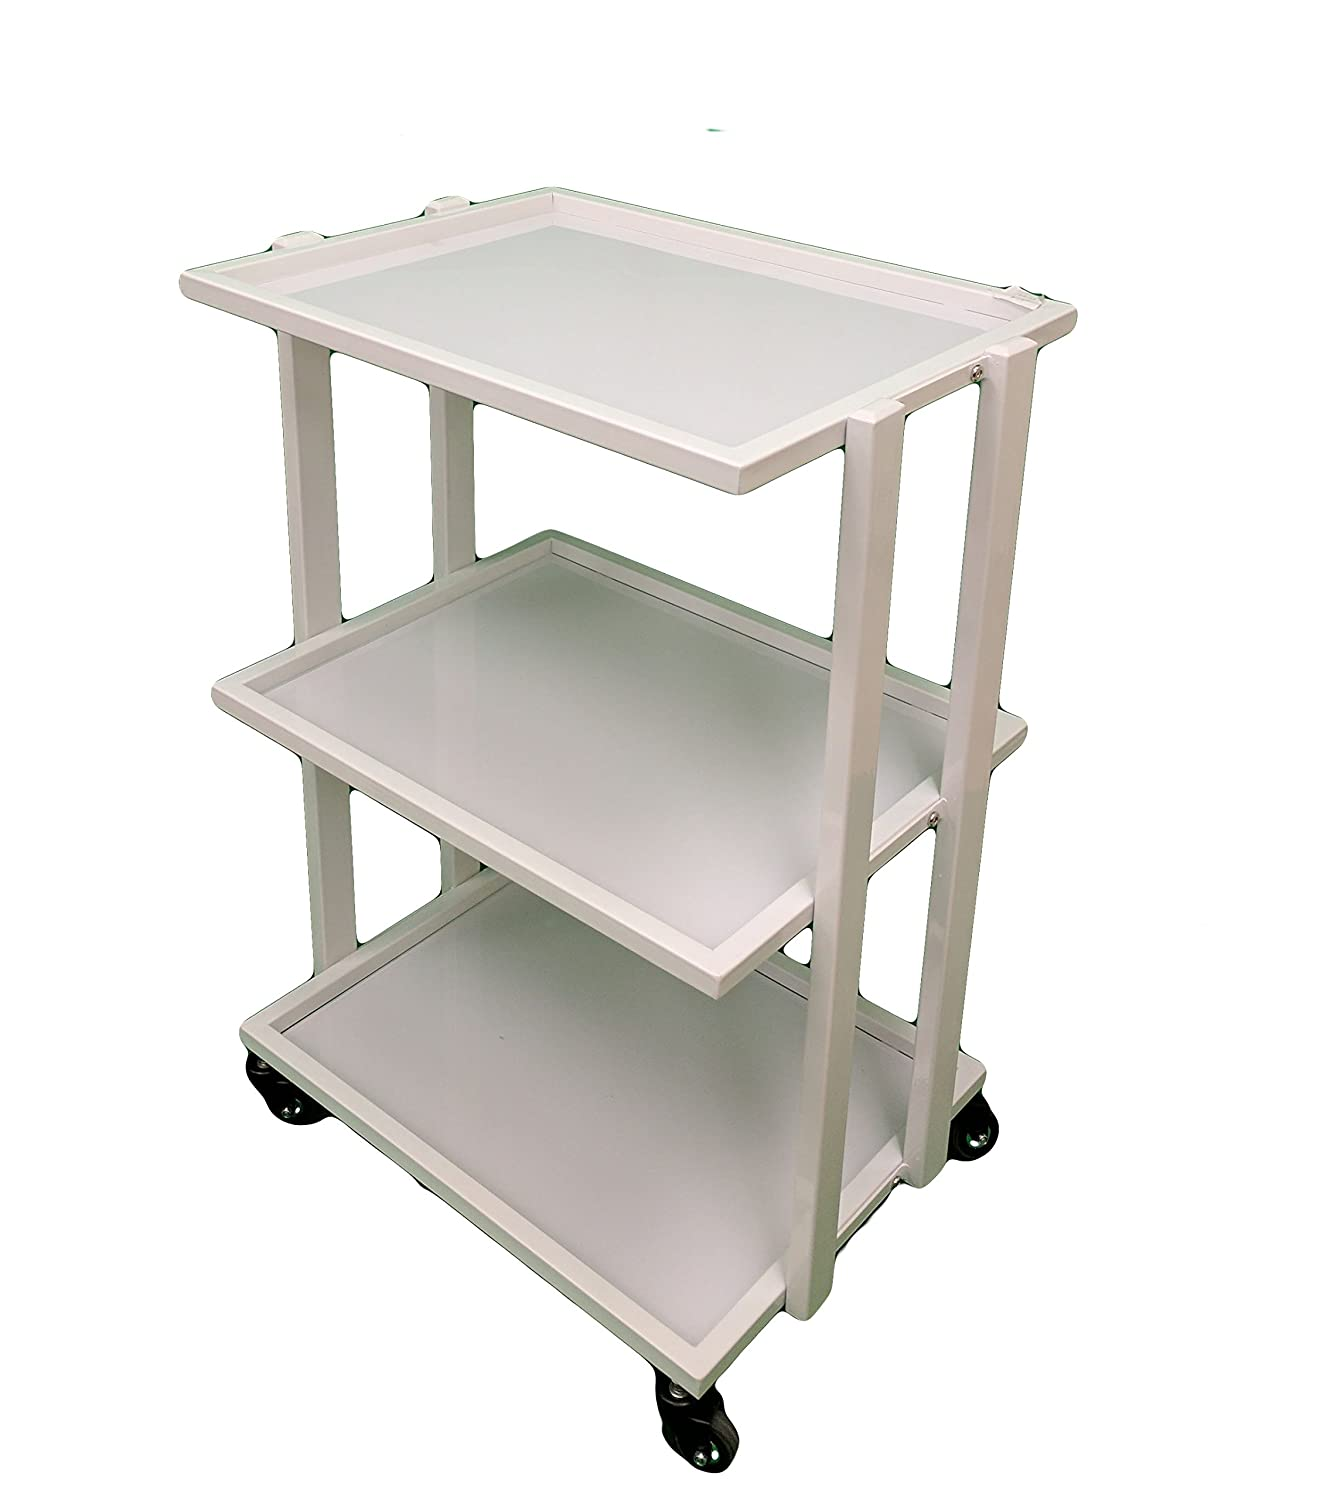 3 Shelve Tempered Glass Facial Trolley Salon SPA Equipment Cart Green Life